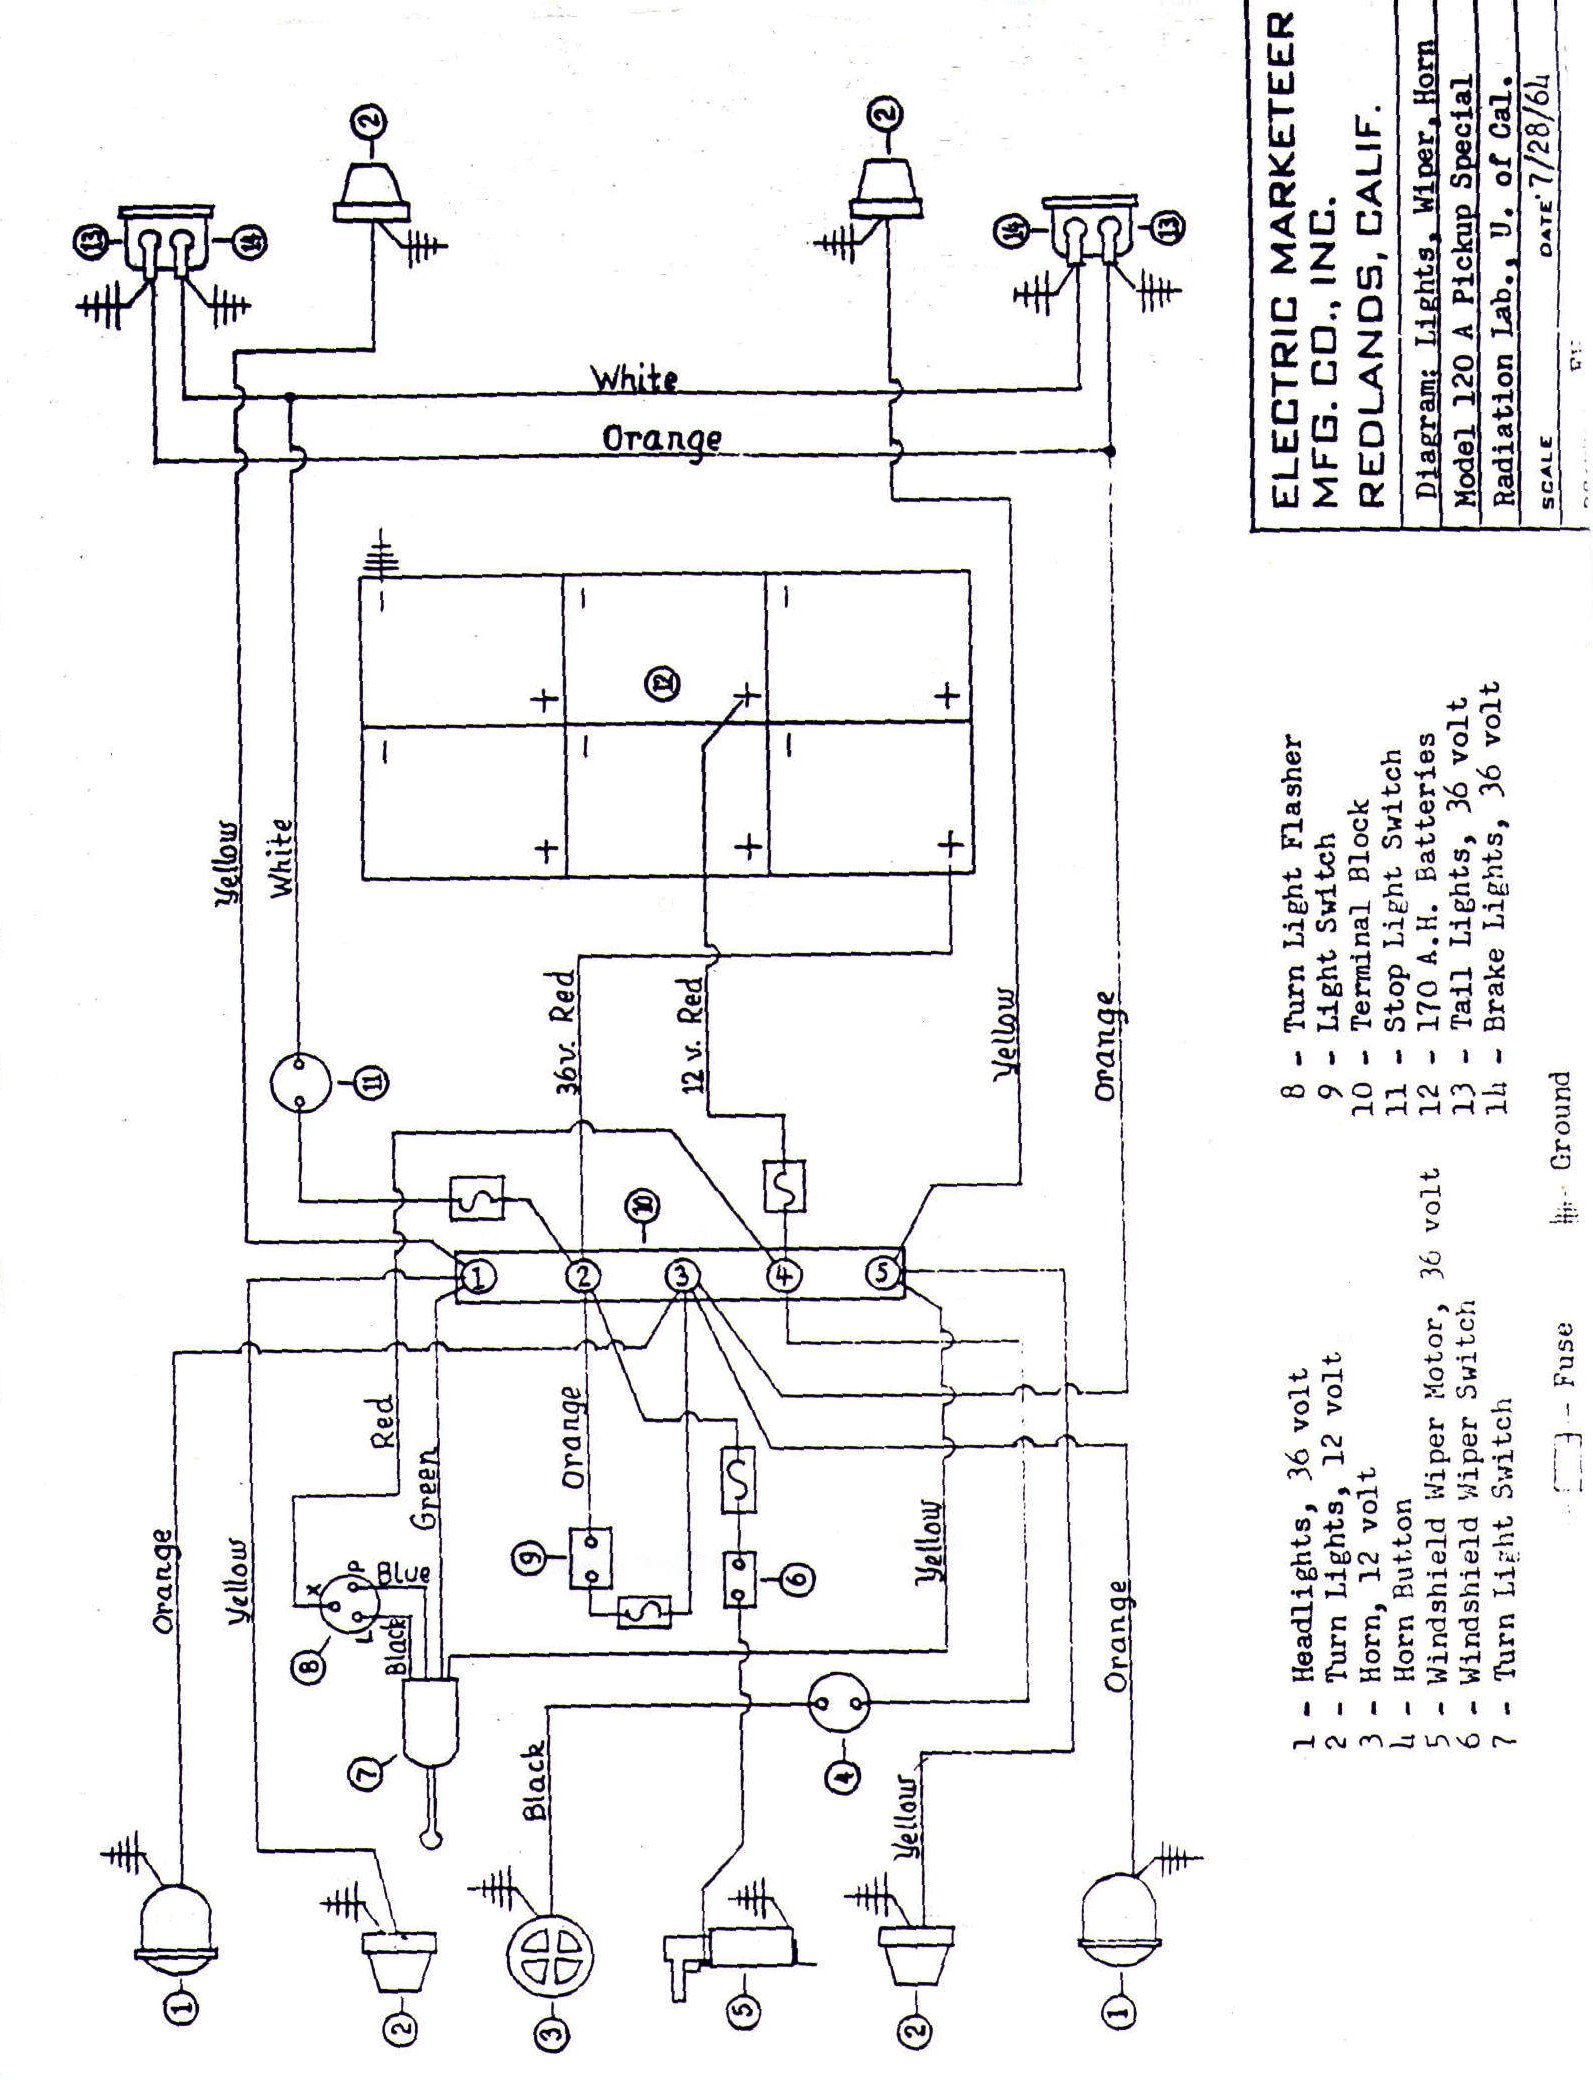 Markeeter_Wiring_Diagram_2 vintagegolfcartparts com westinghouse golf cart wiring diagram at soozxer.org